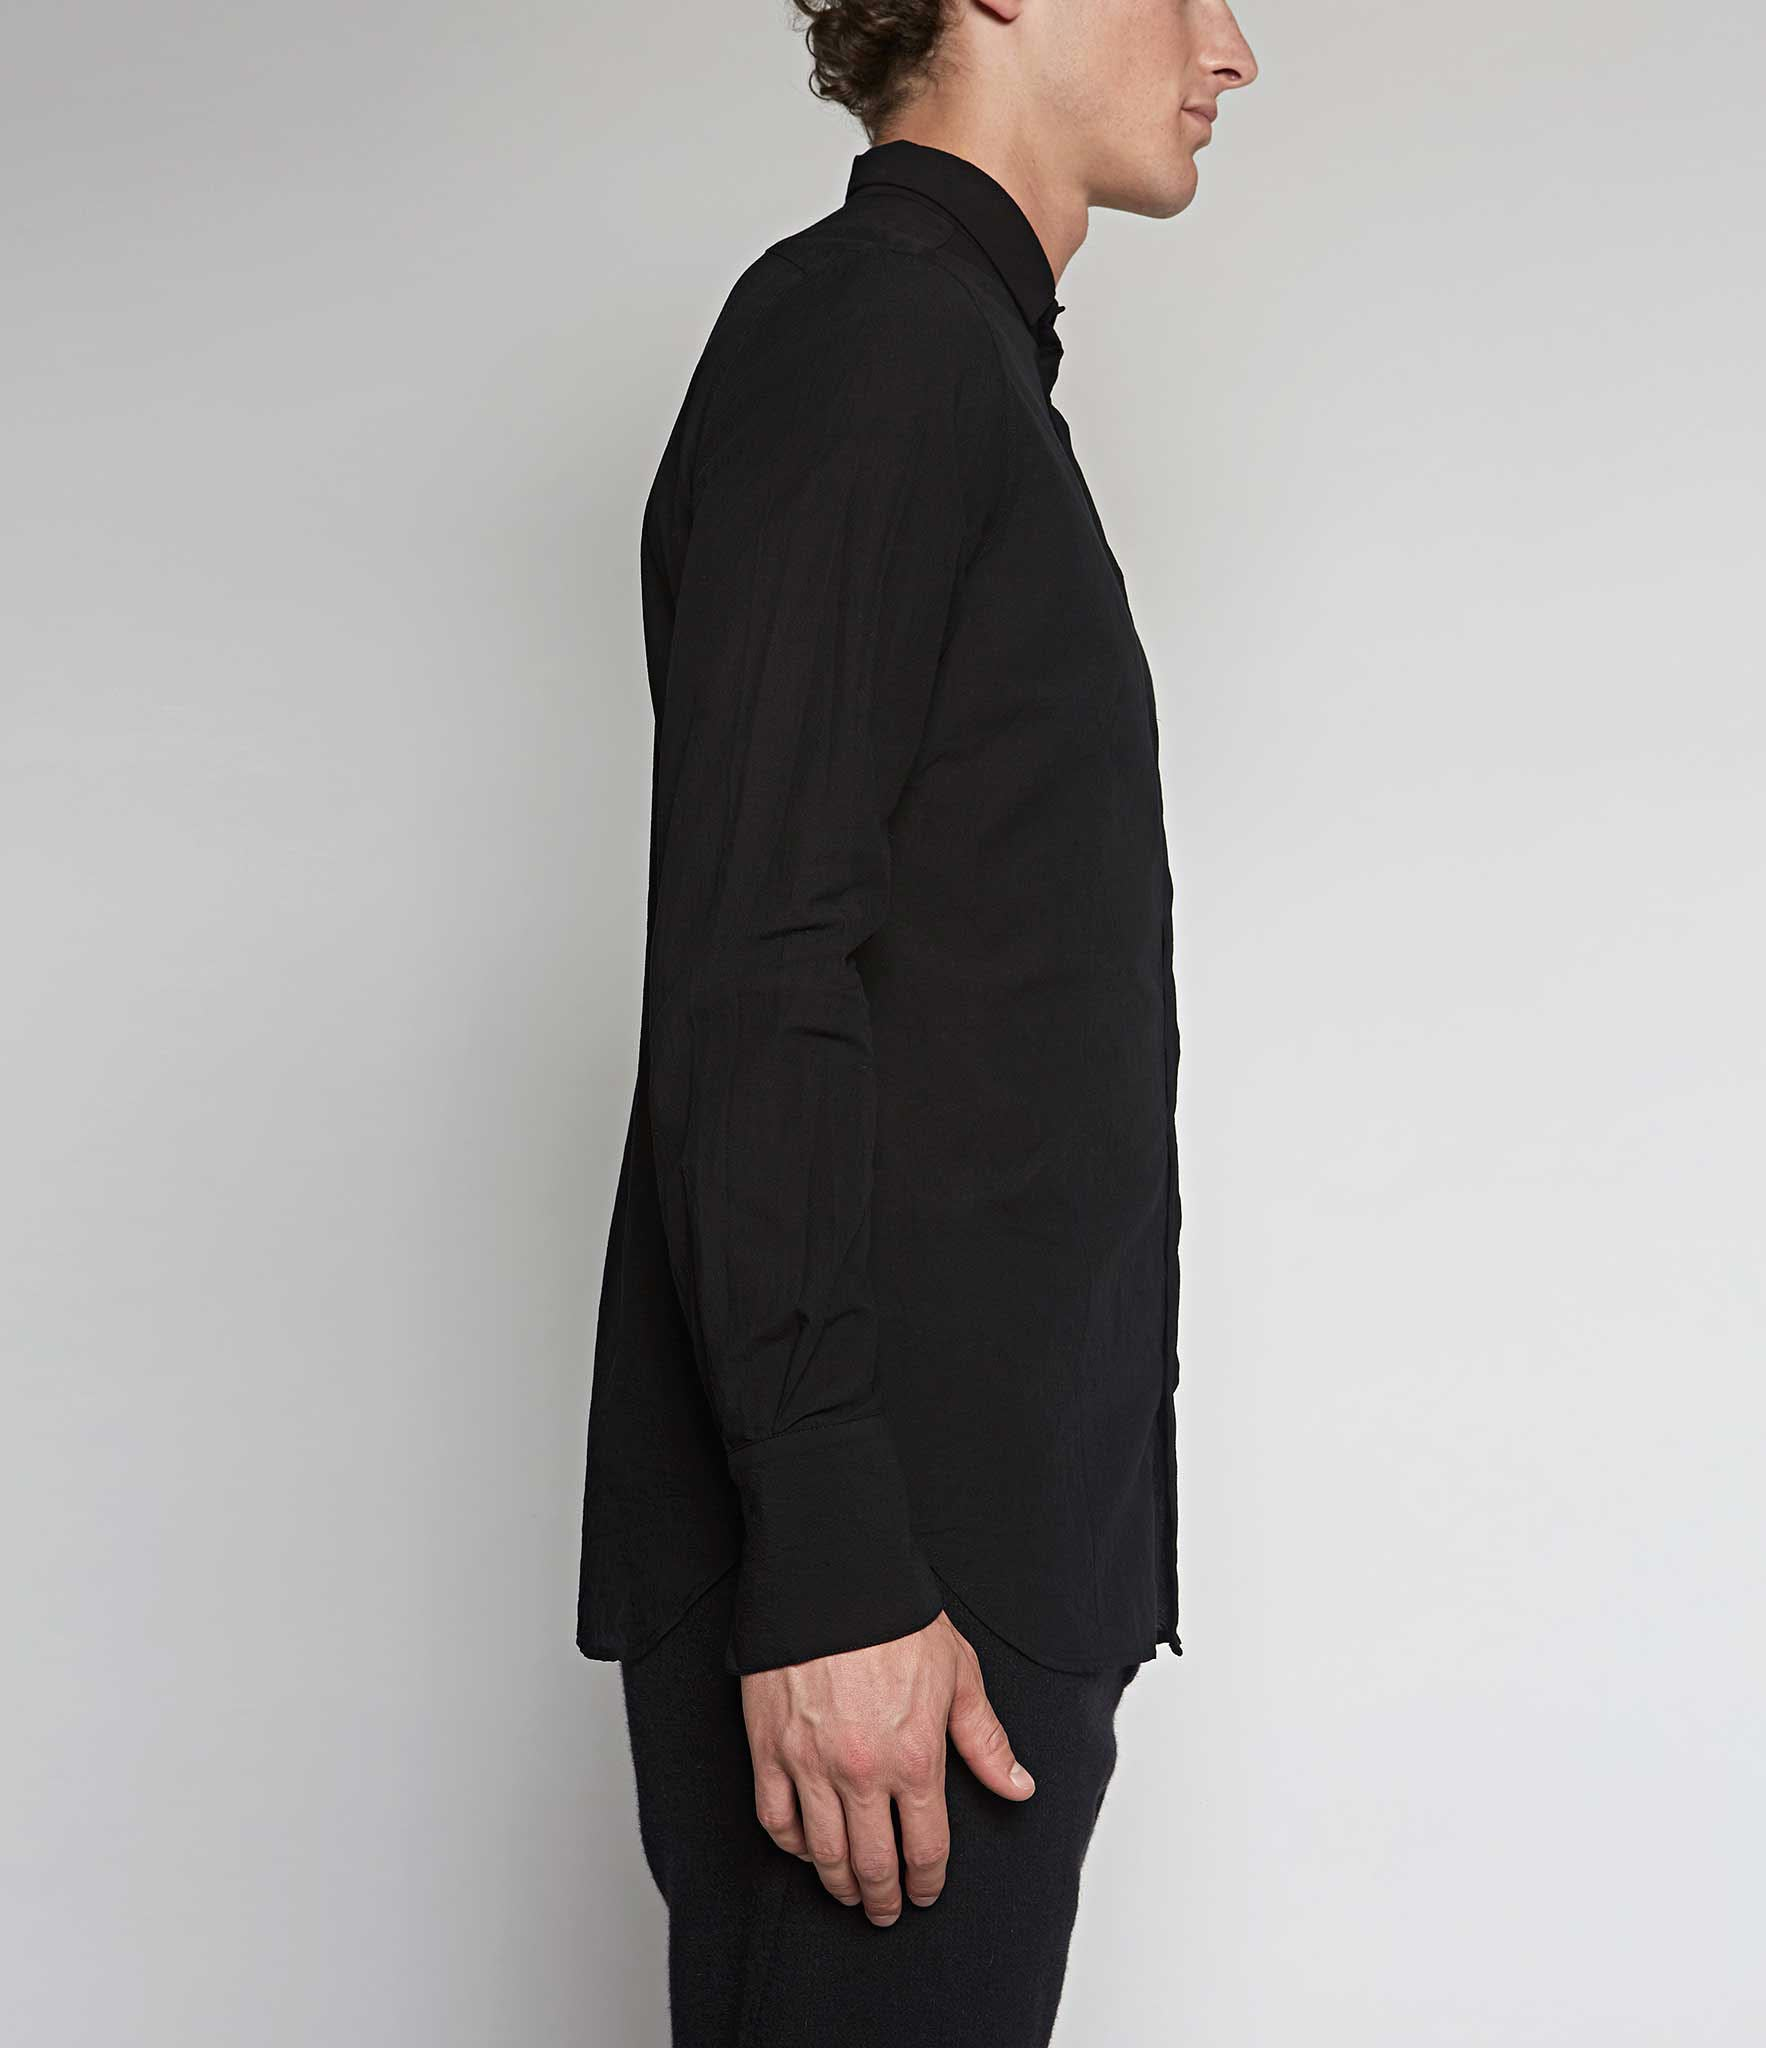 Forme d'Expression High Collared Shirt